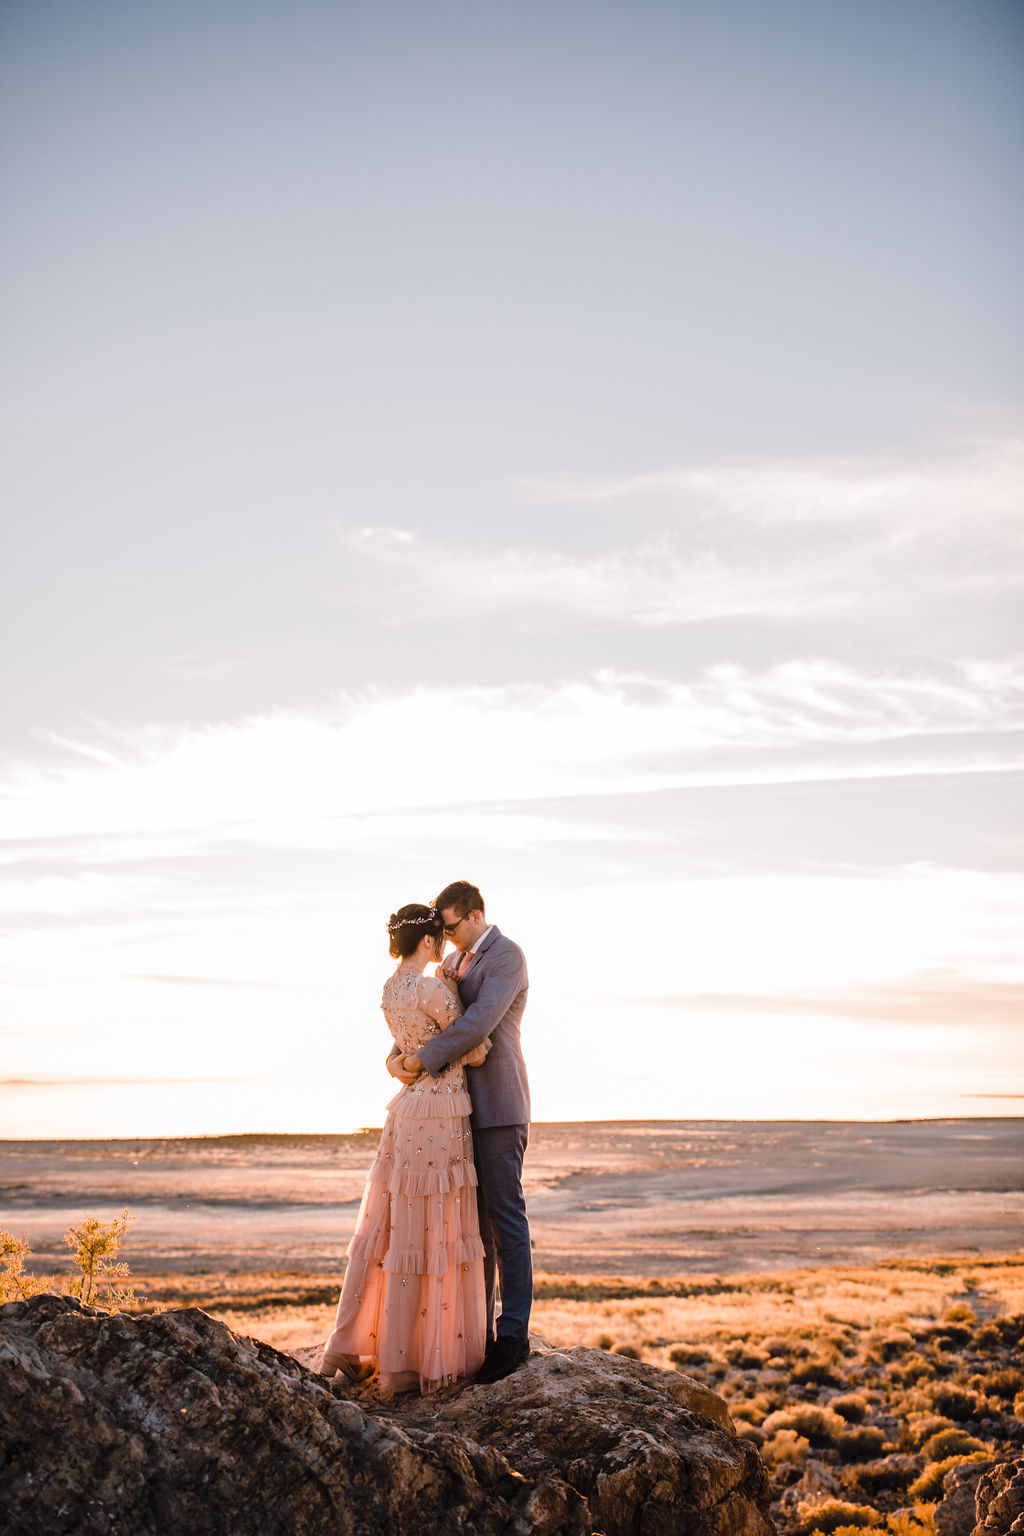 sunset wedding photos calli richards photography blush wedding dress with ruffles and jewels kissing couple bride and groom formals